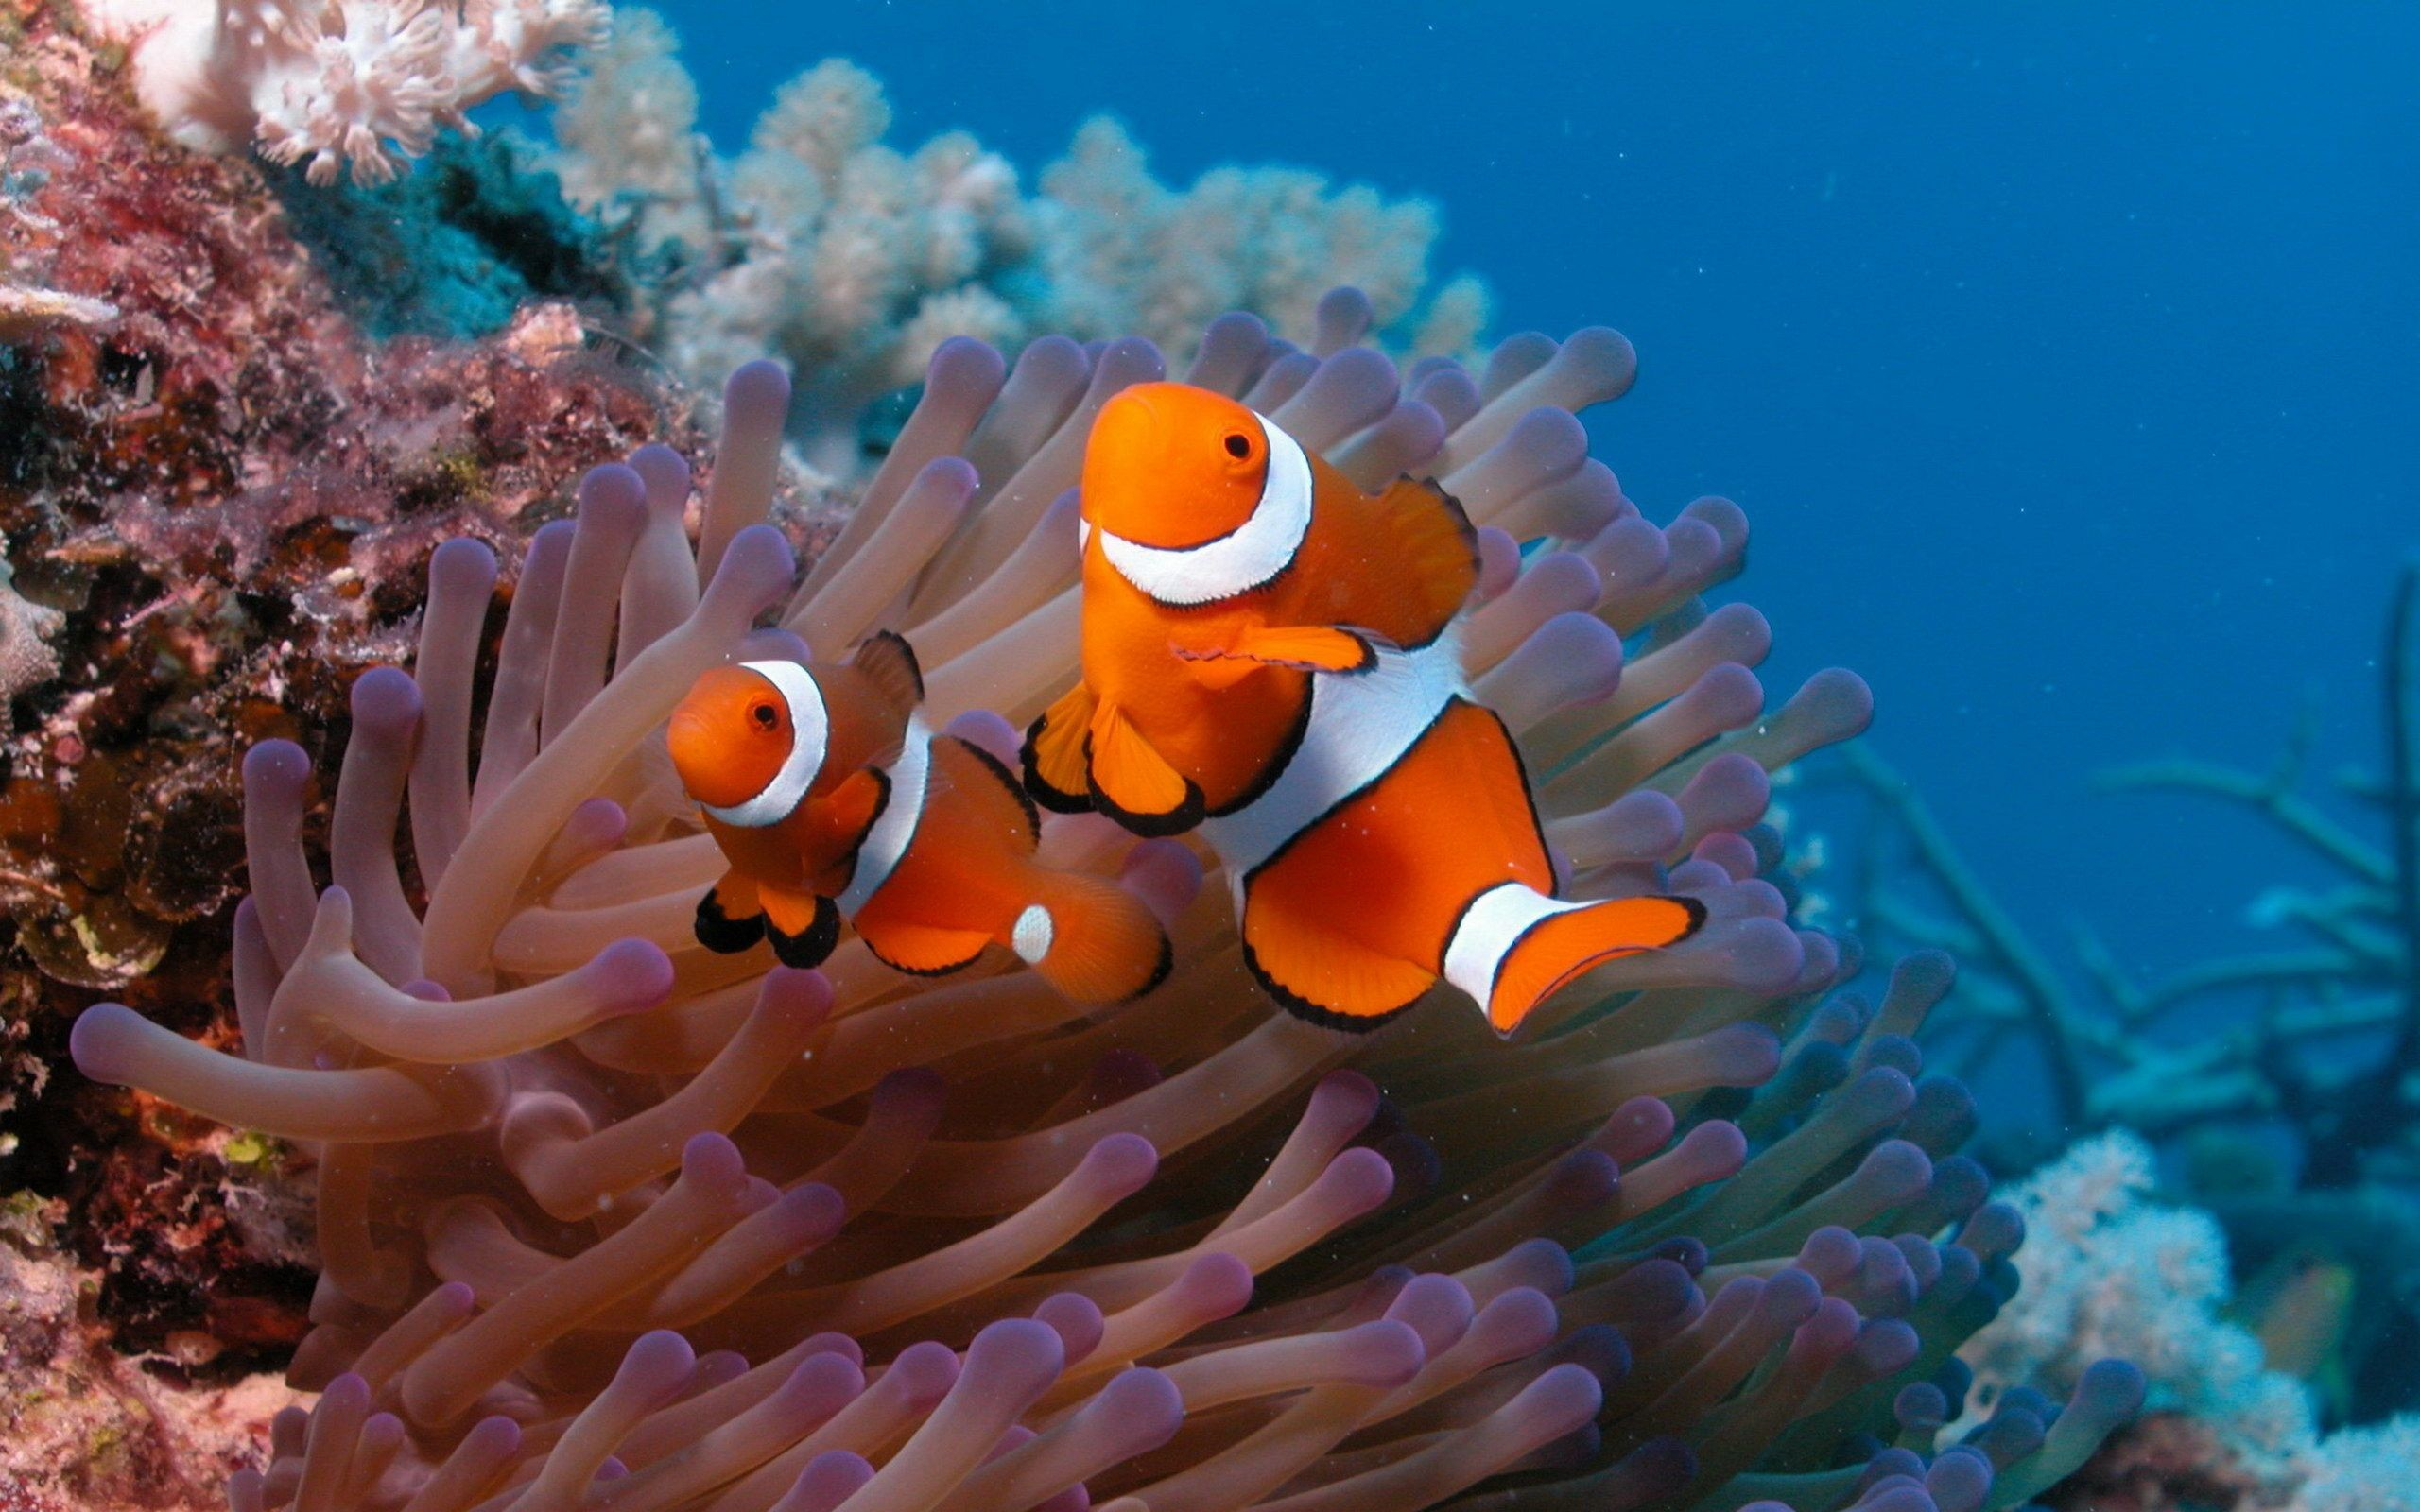 Download Coral Reef HD Wallpapers 6350 px High .